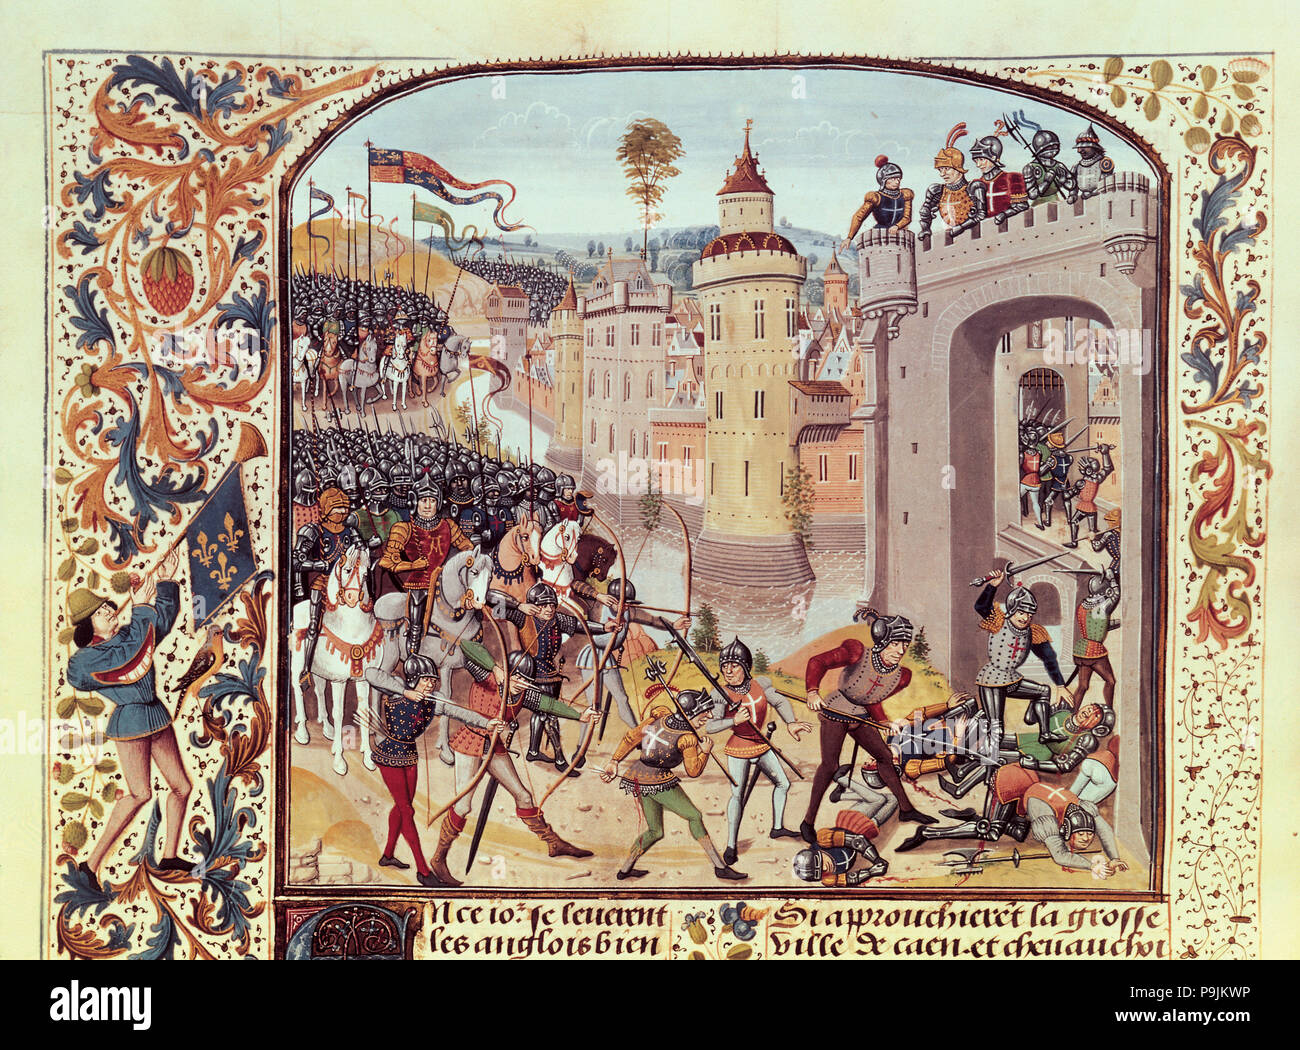 Taking of Caen by the English (1346), Miniature in 'Chroniques de France',  15th century, illuminated manuscript.